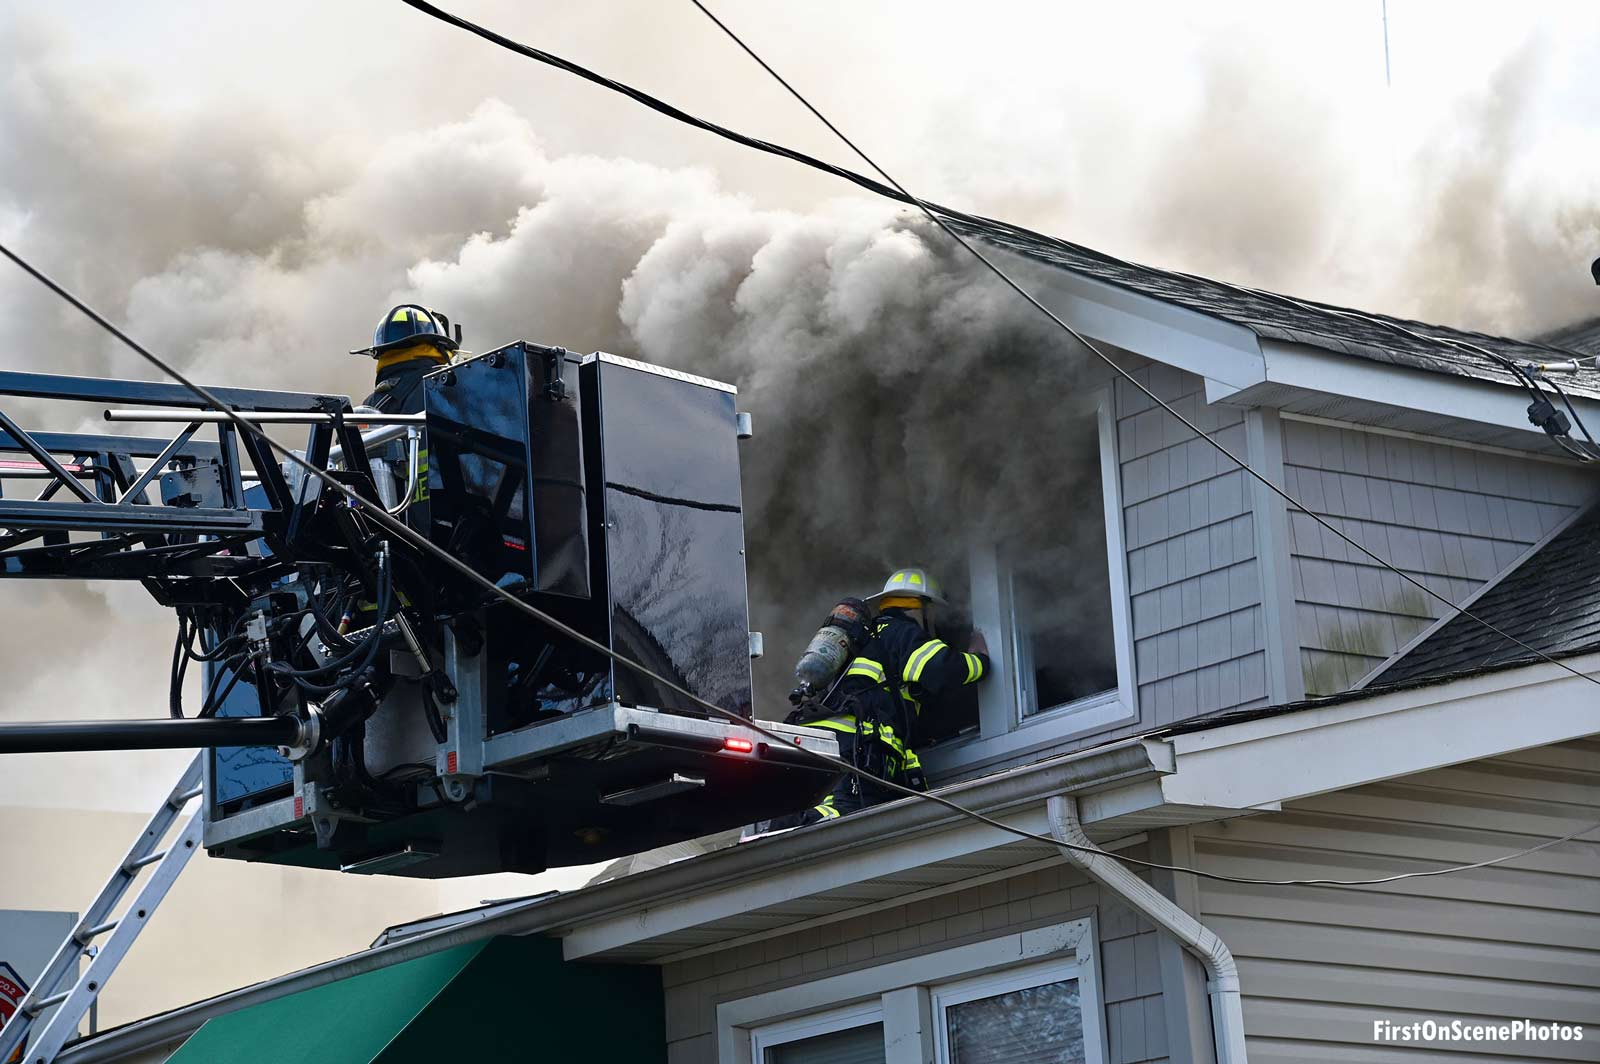 Smoke shoots from the windows as firefighters work in the bucket and on a roof at a house fire